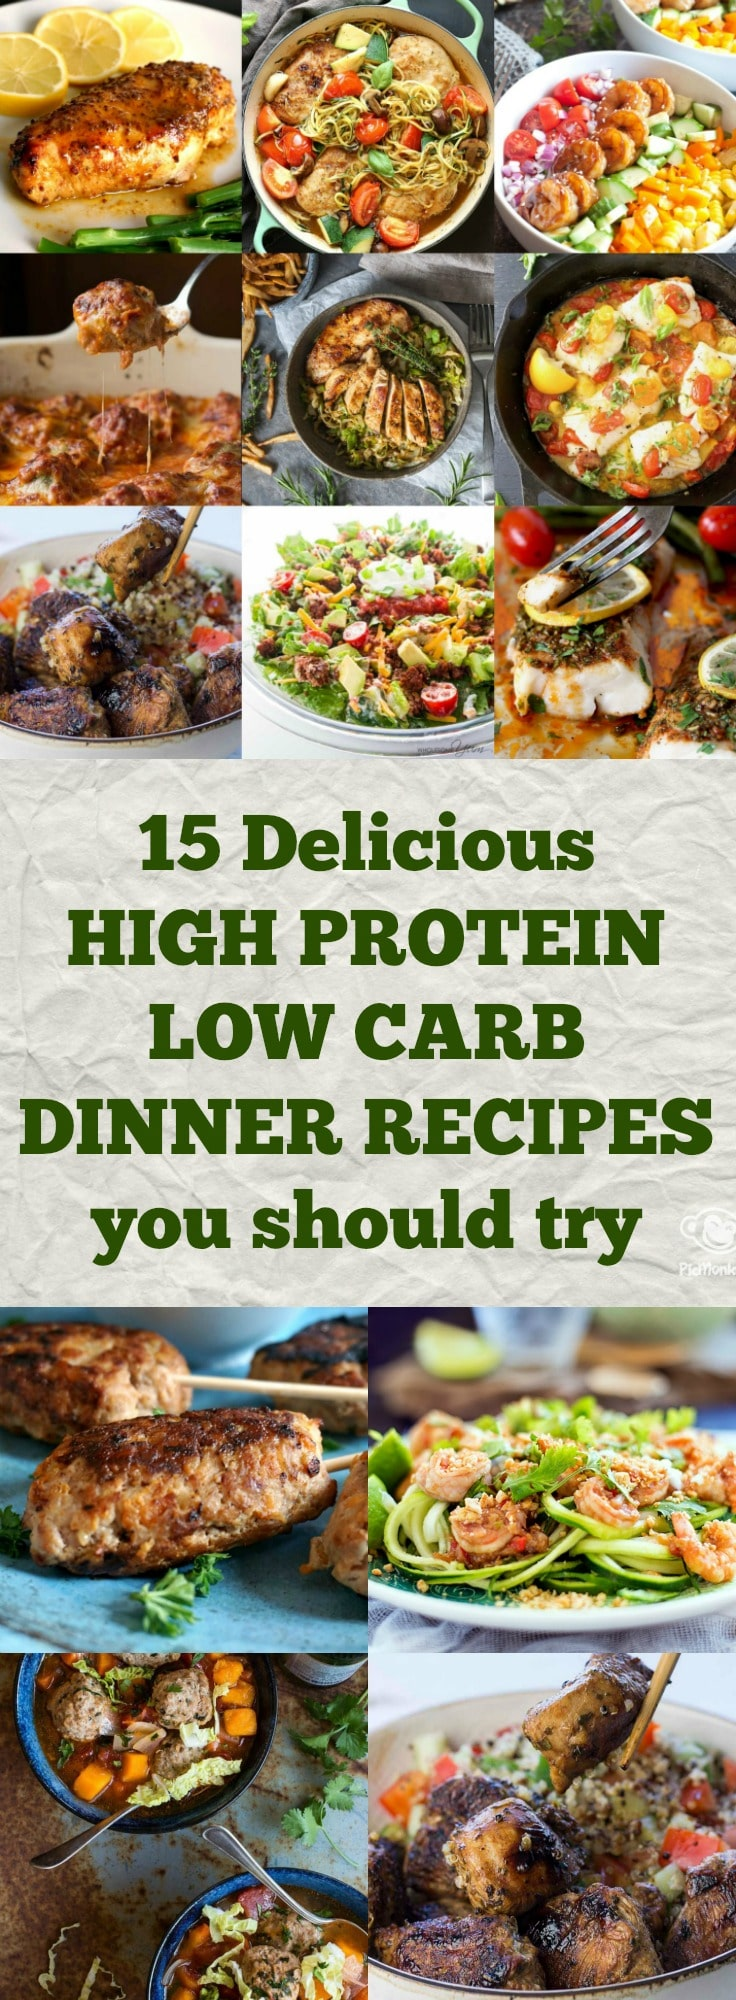 15 Delicious High Protein Low Carb Dinner Recipes You Should Try My Gorgeous Recipes